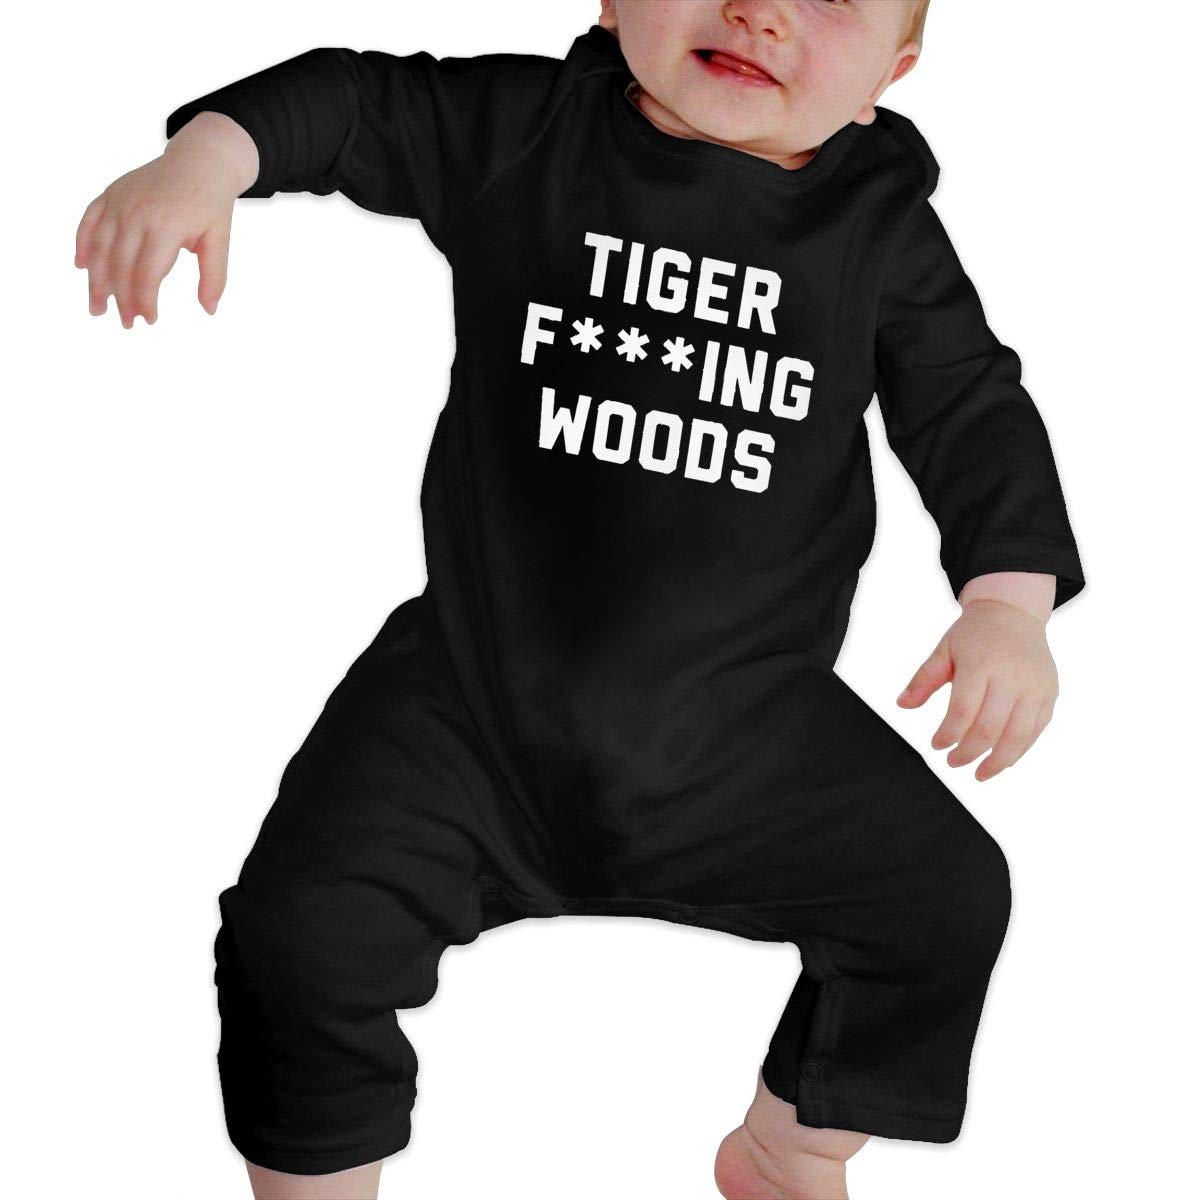 Fional Infant Long Sleeve Romper Tiger Fcuking Woods Newborn Babys 0-24M Organic Cotton Jumpsuit Outfit